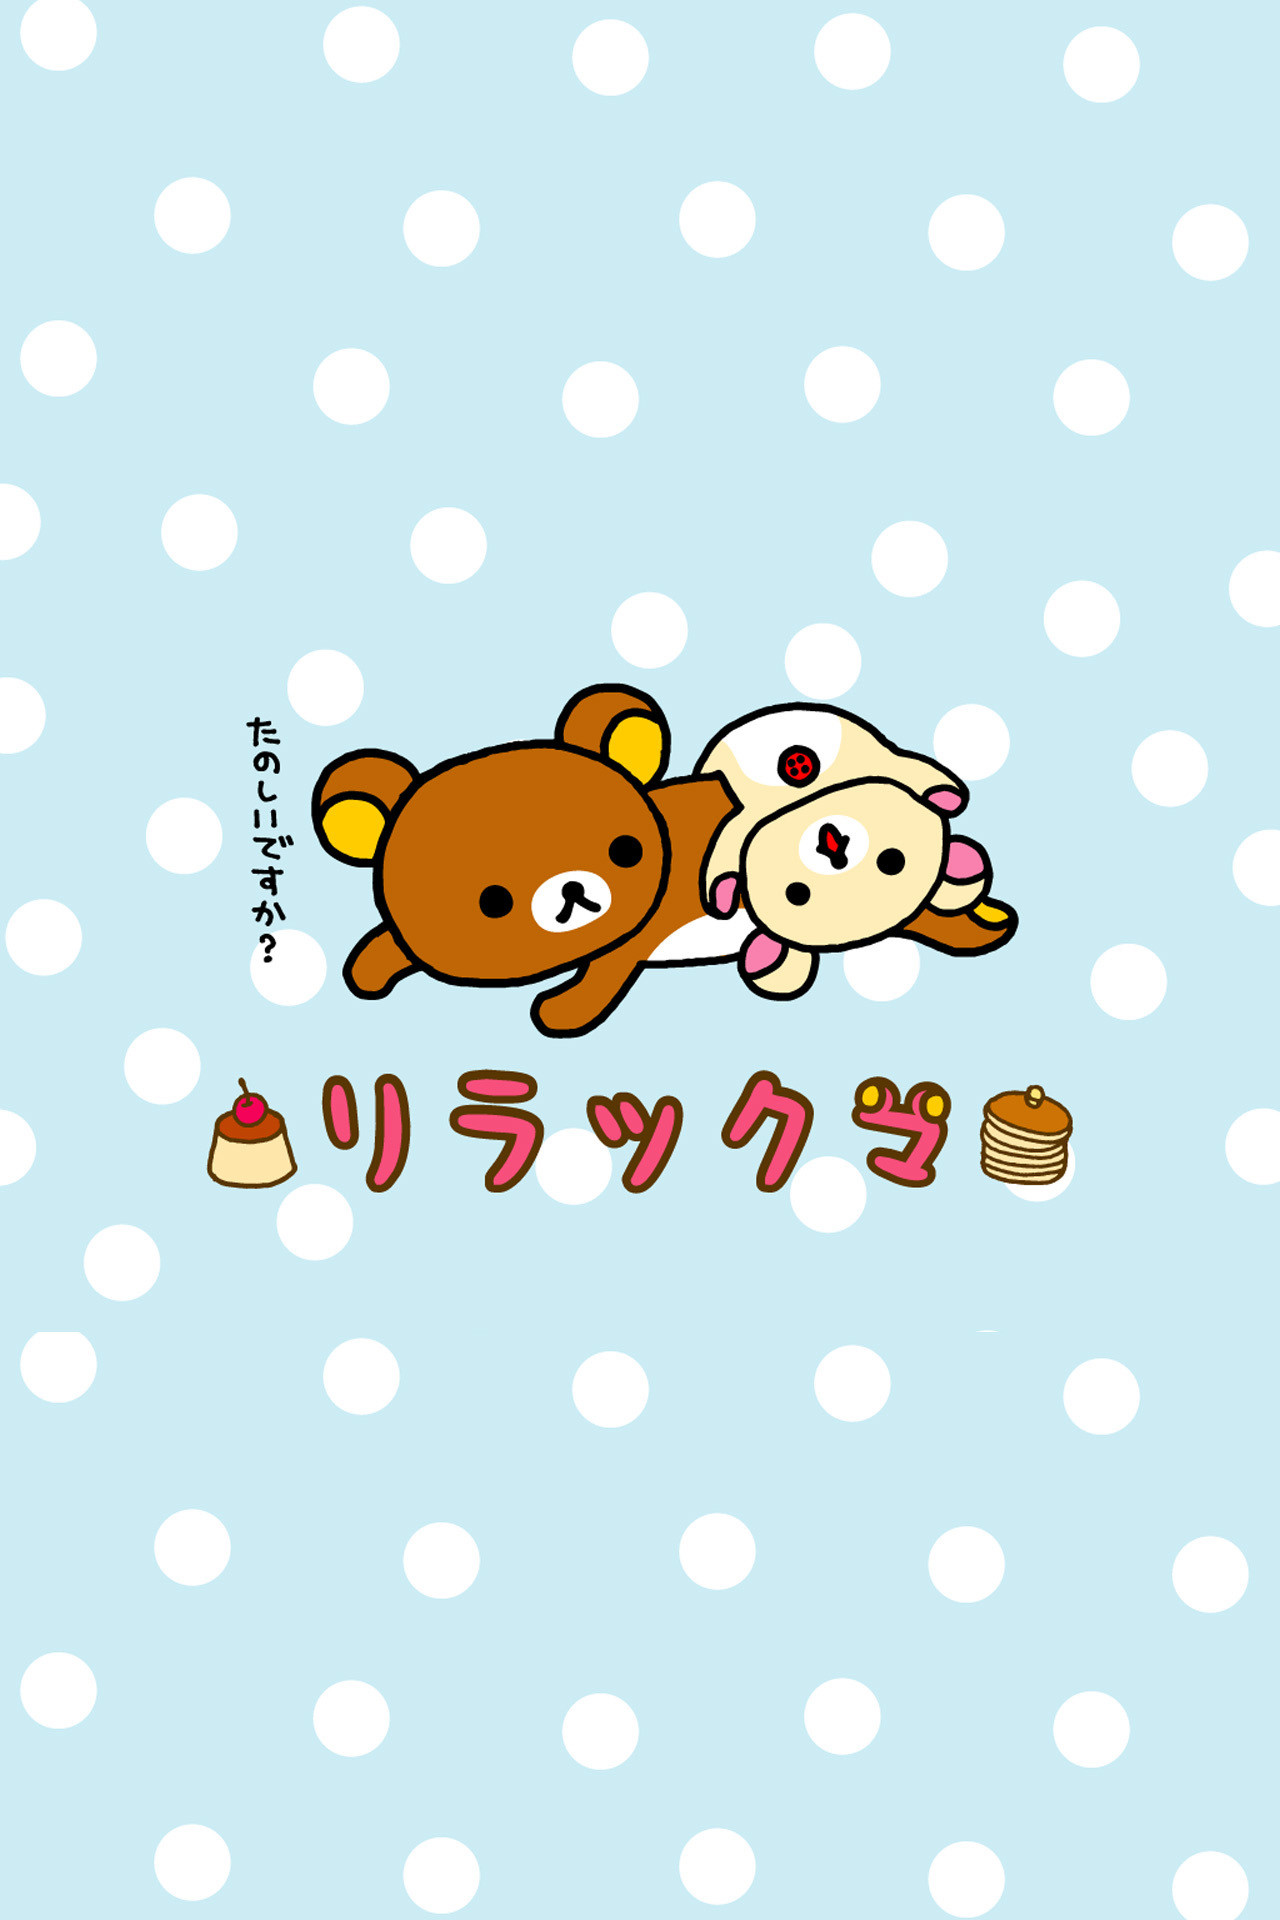 Cute and colorful Rilakkuma wallpapers to fit your iPhone iPhone iPhone  Galaxy and Galaxy Note